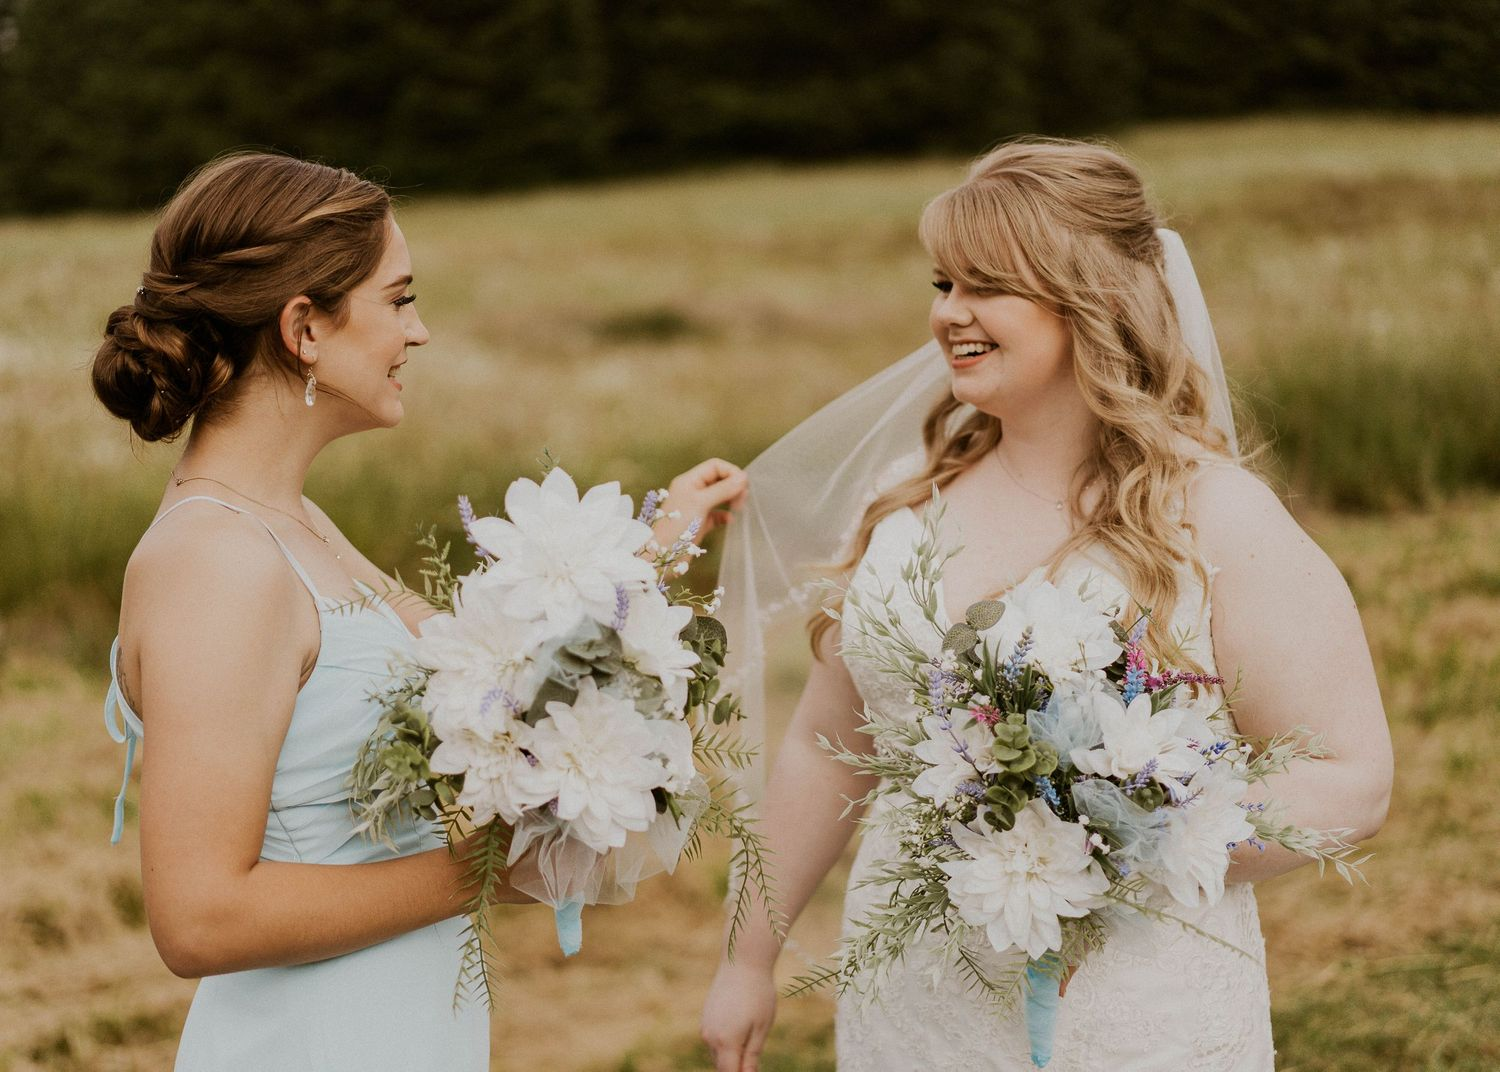 Photo by Kelsie Burke Photography of the bride with a bridesmaid